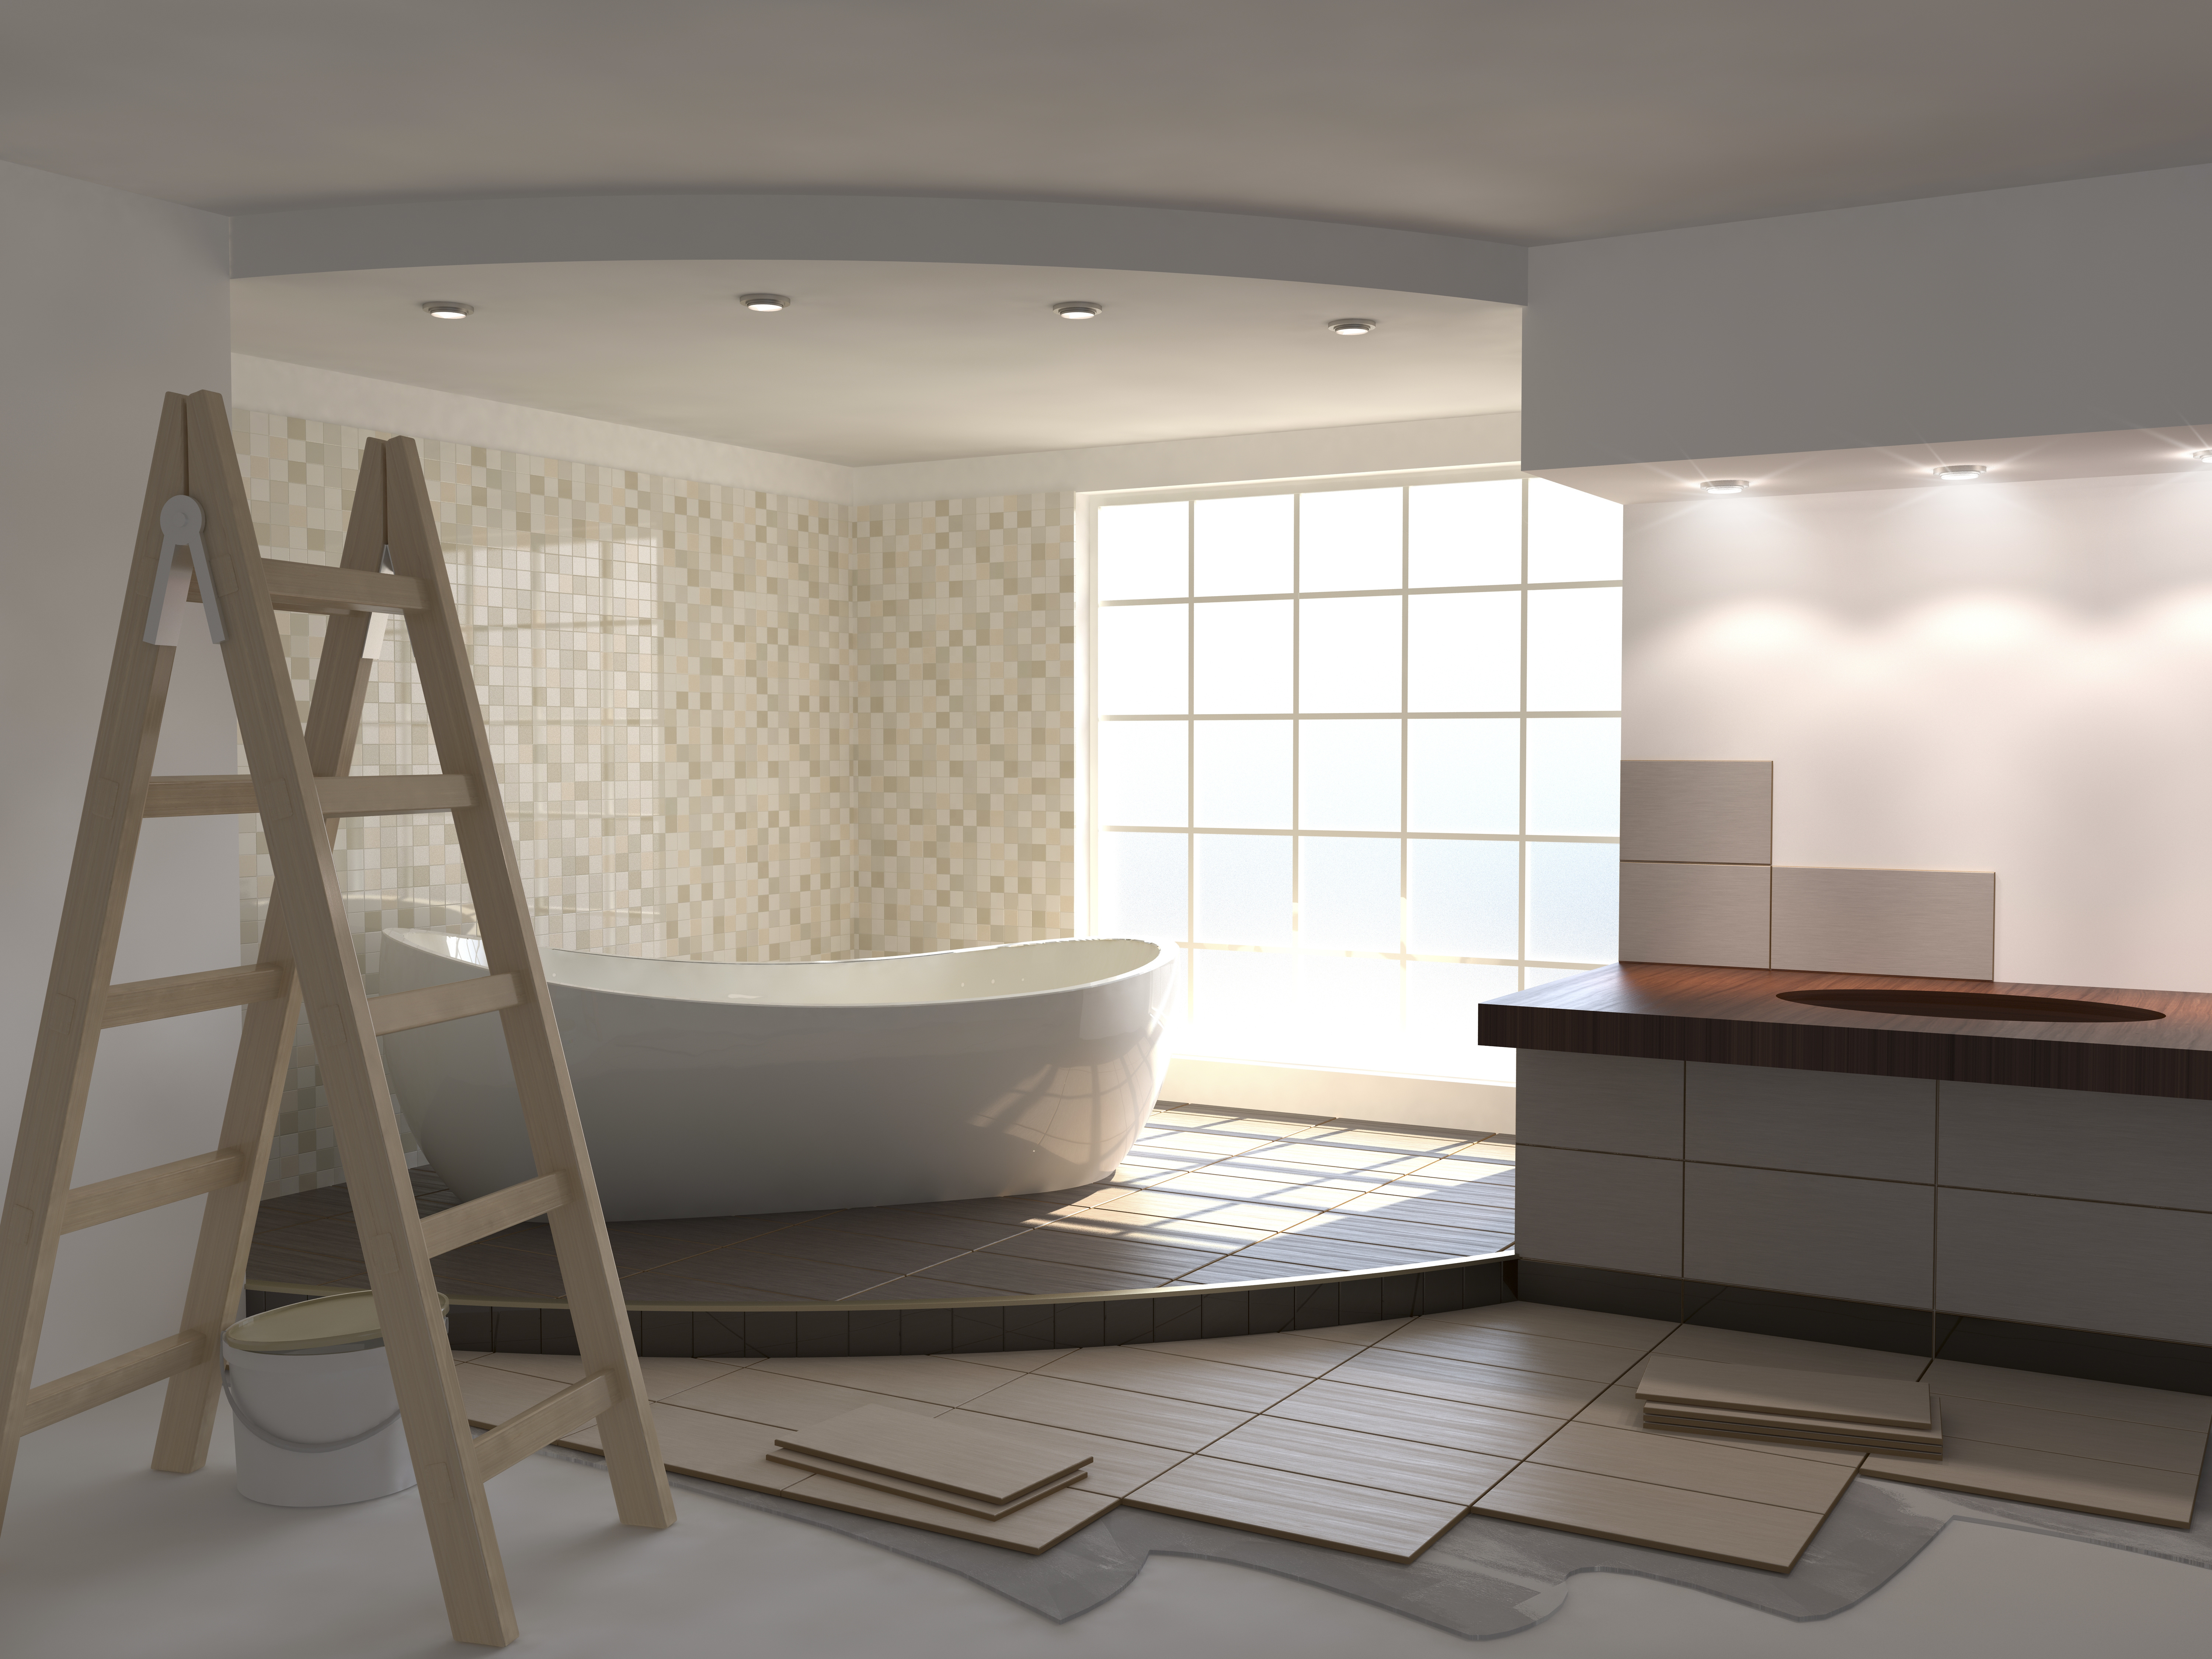 If you plan to sell your house, there are several bathroom trends to avoid for resale value.